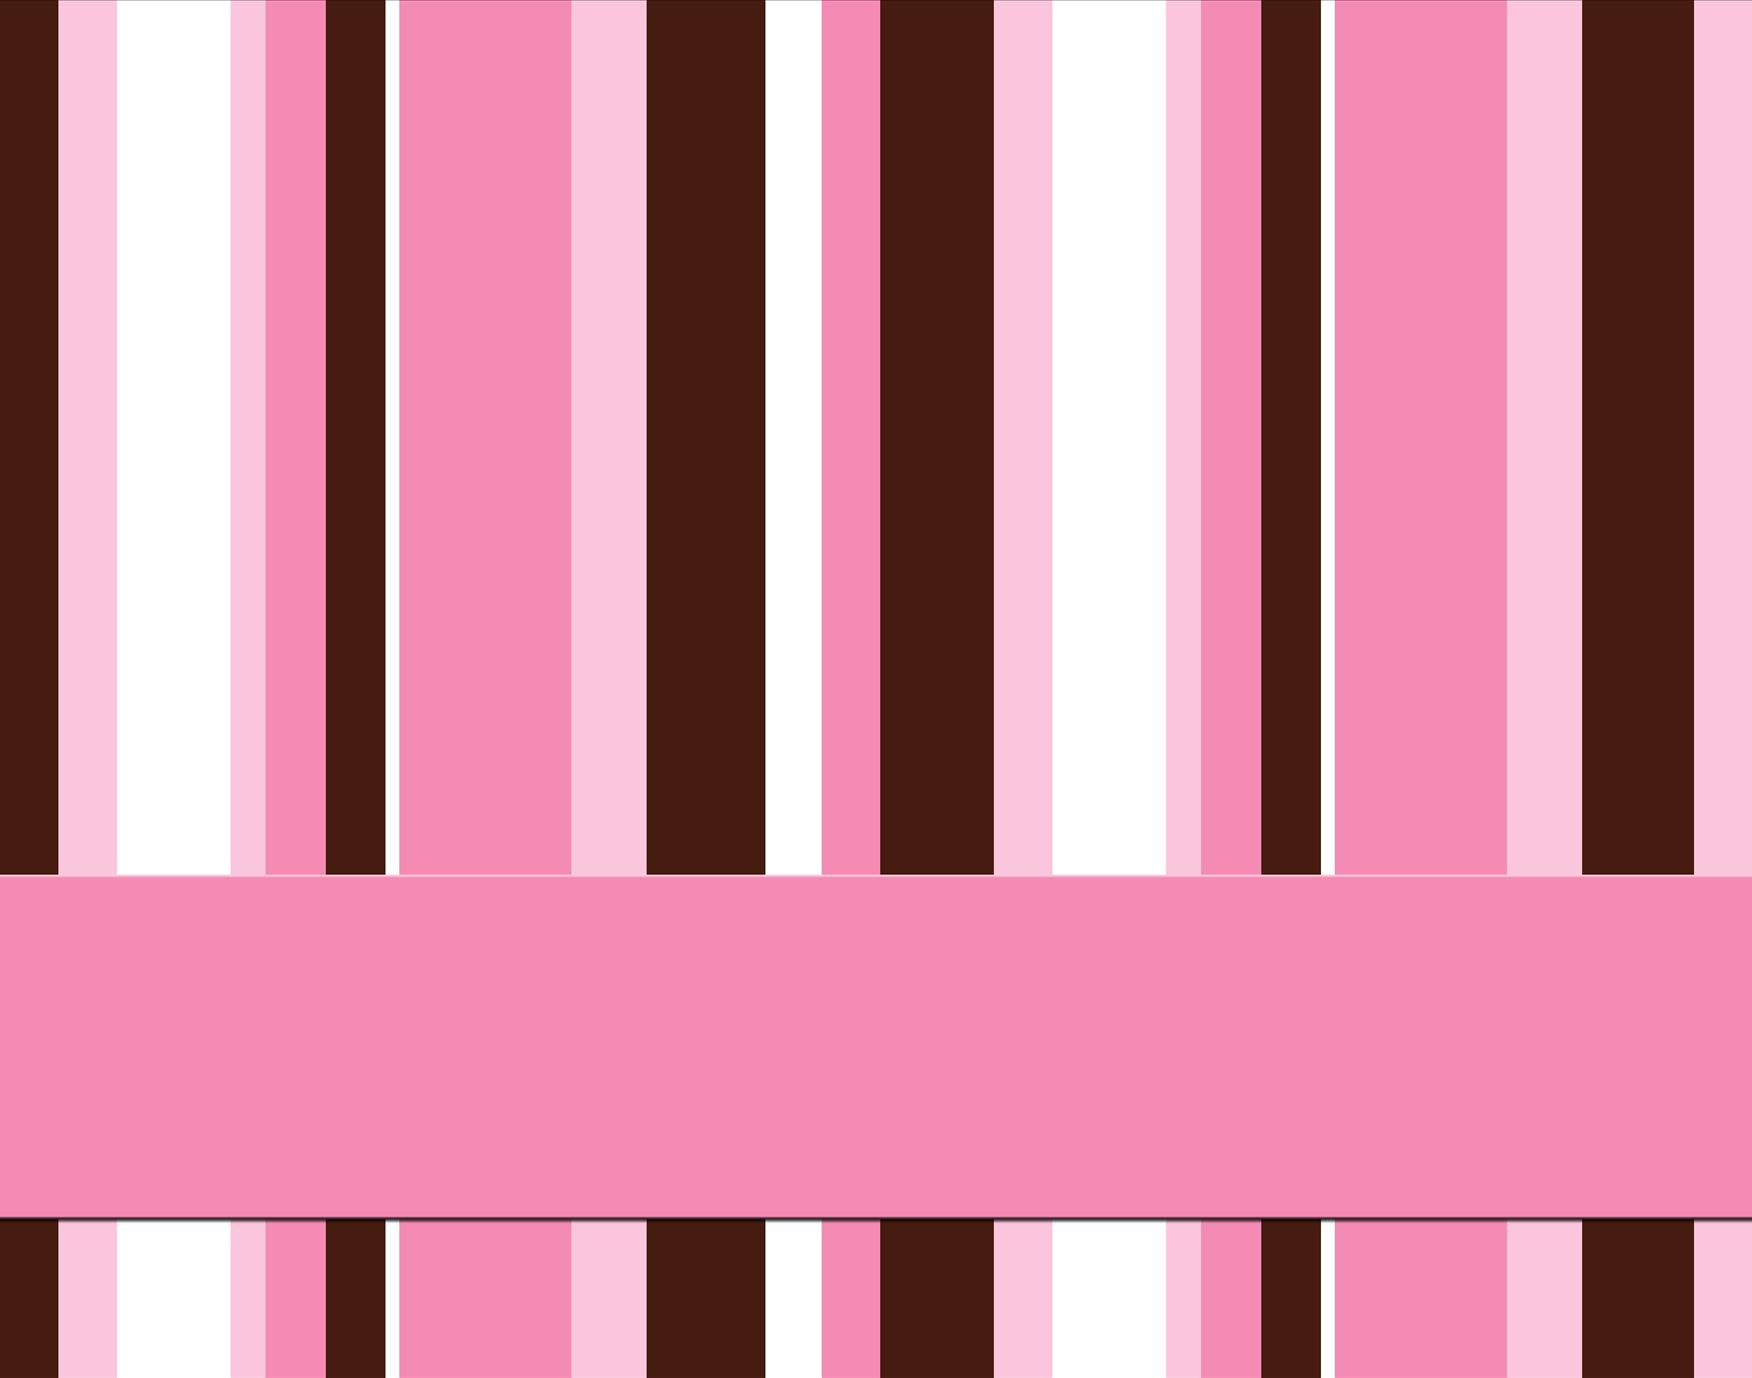 Outstanding Pink and White Stripes 1752 x 1378 · 86 kB · jpeg